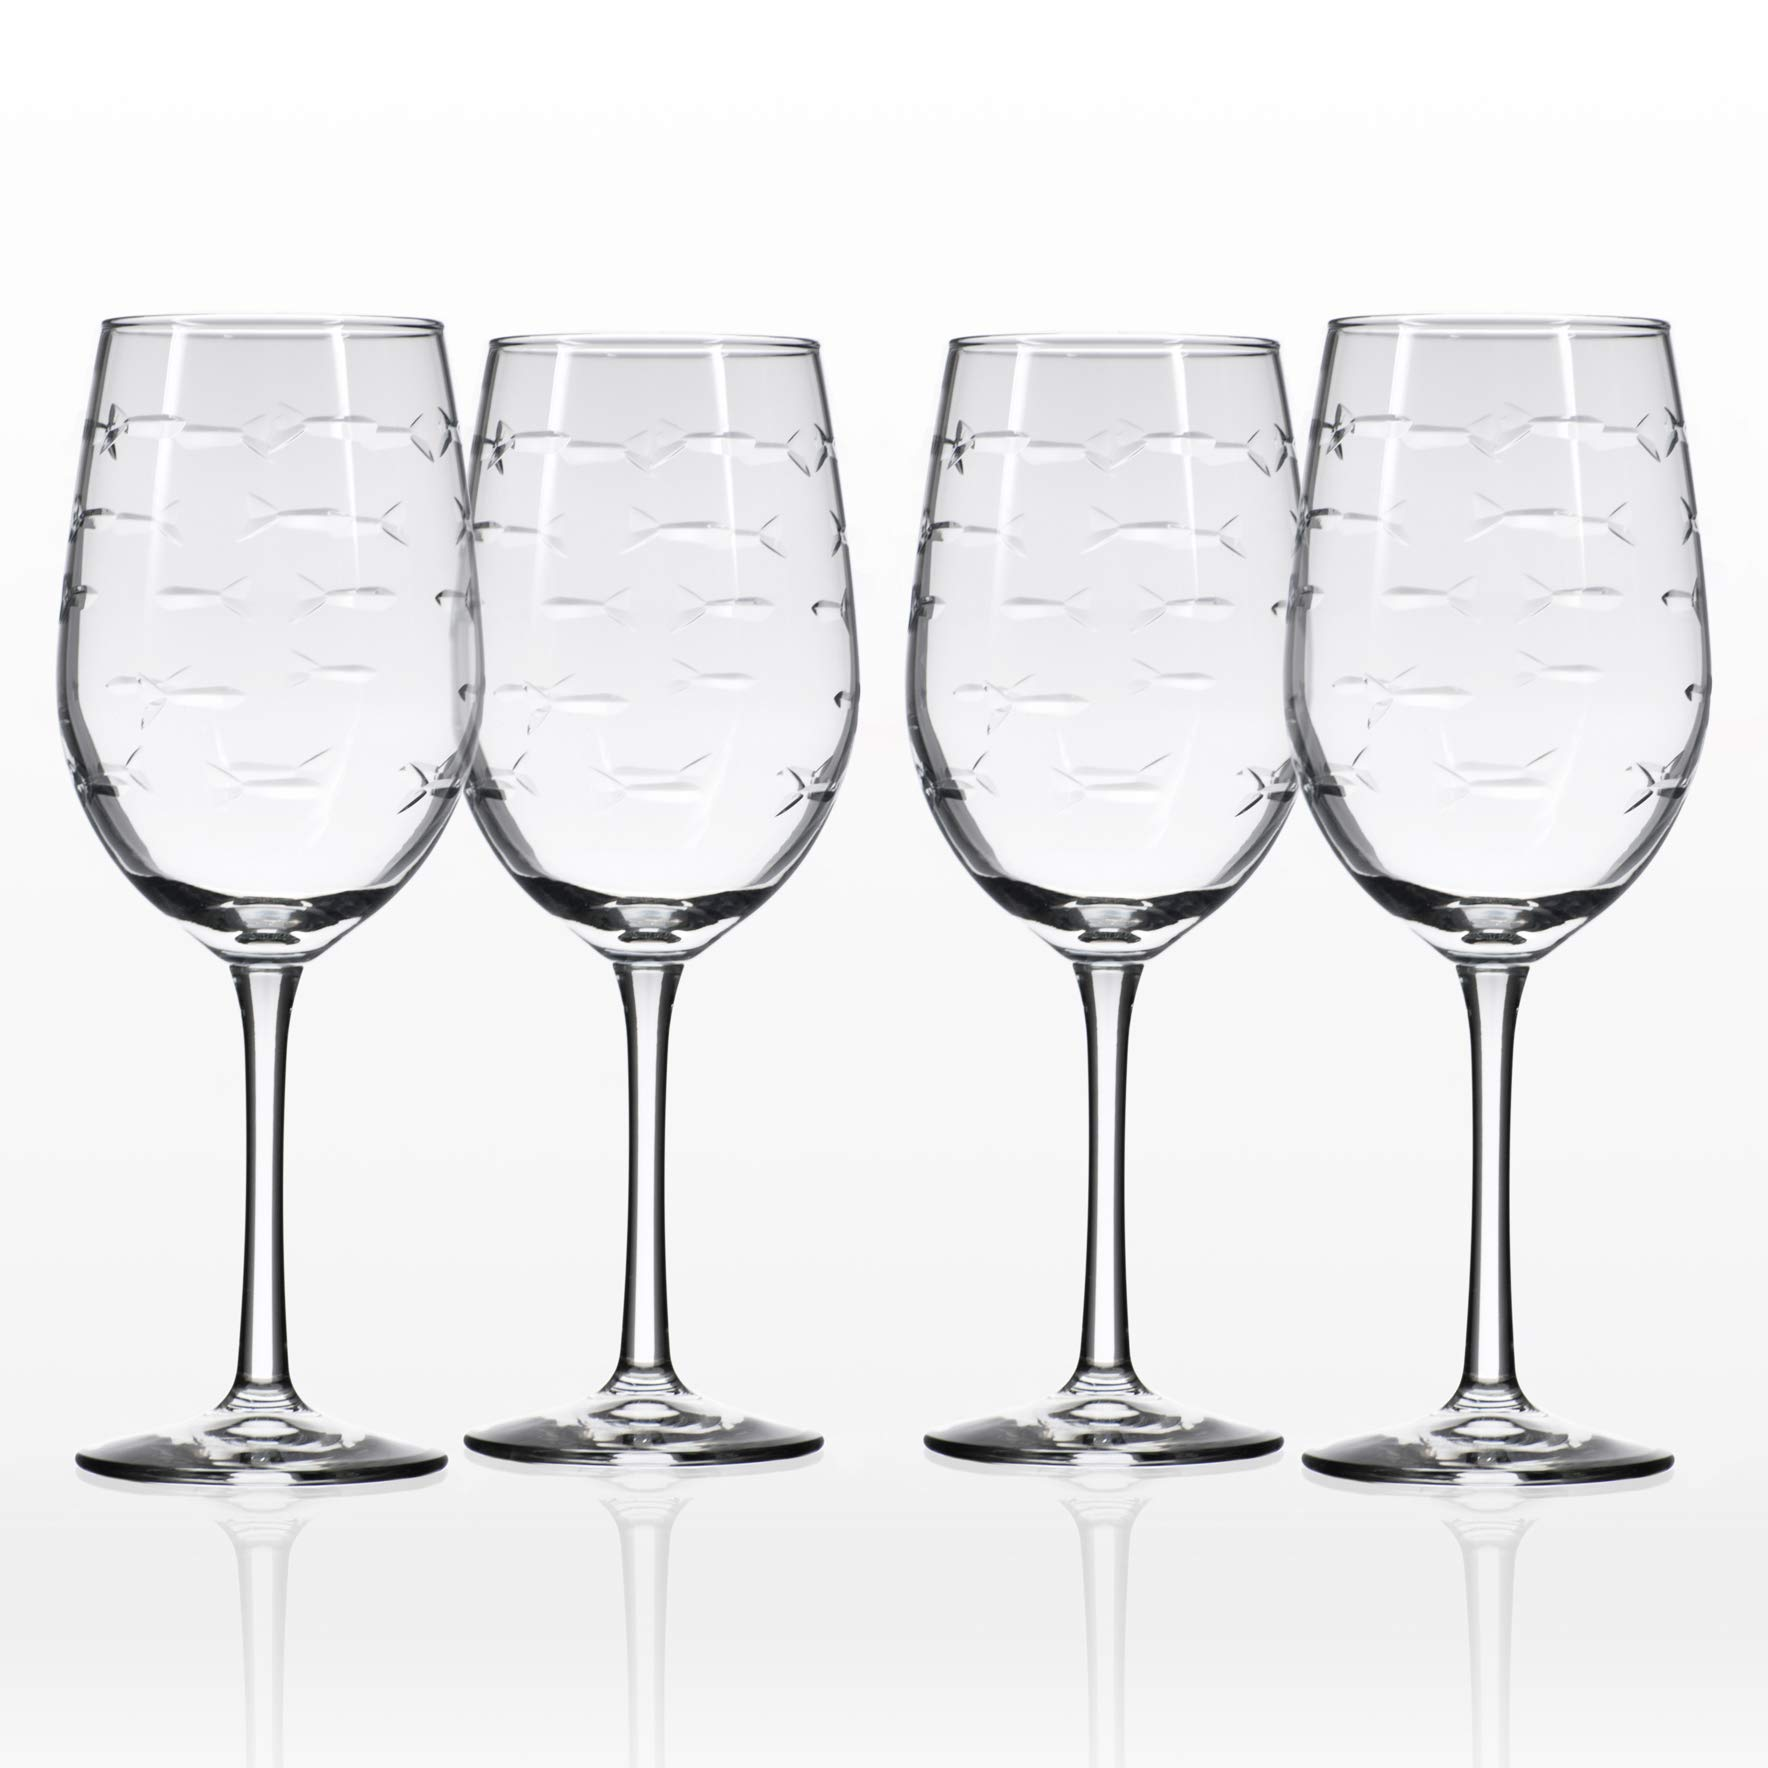 Rolf Glass School of Fish White Wine Glass 12 ounces Set of 4